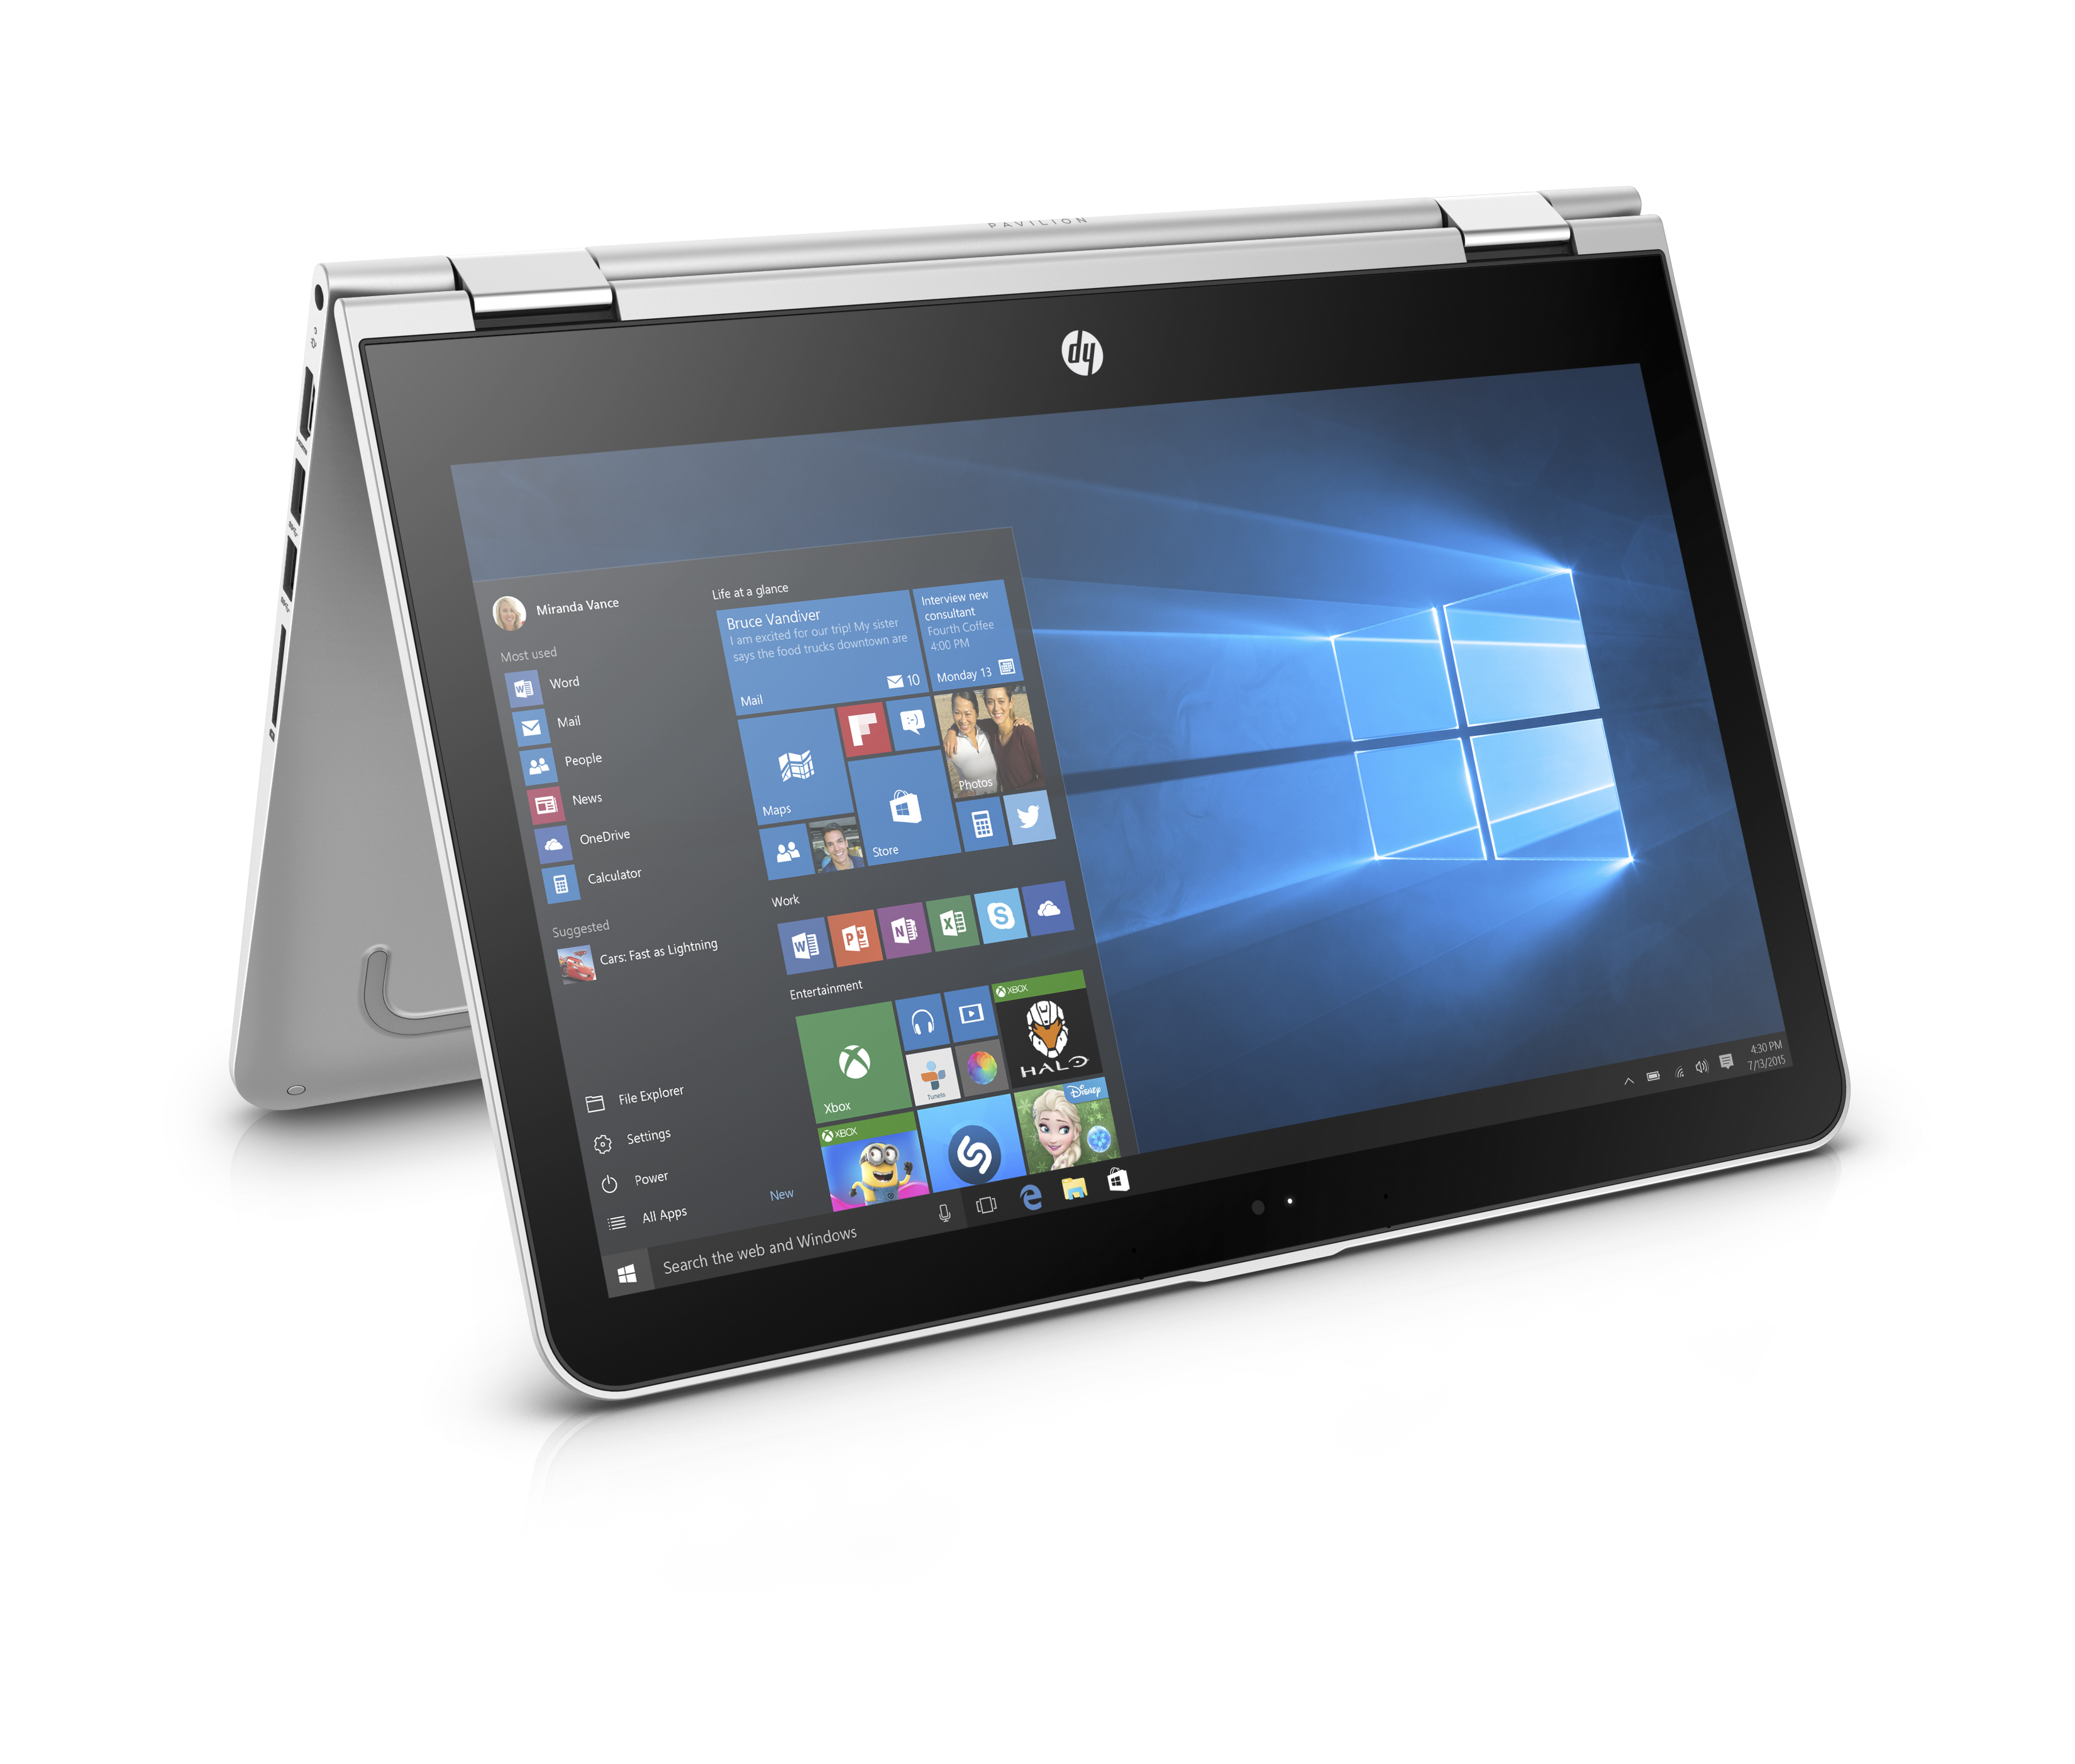 HP back to school slideshow 2 - HP Pavilion x360 13.3_Natural Silver_Entertainment Mode_Right Facing